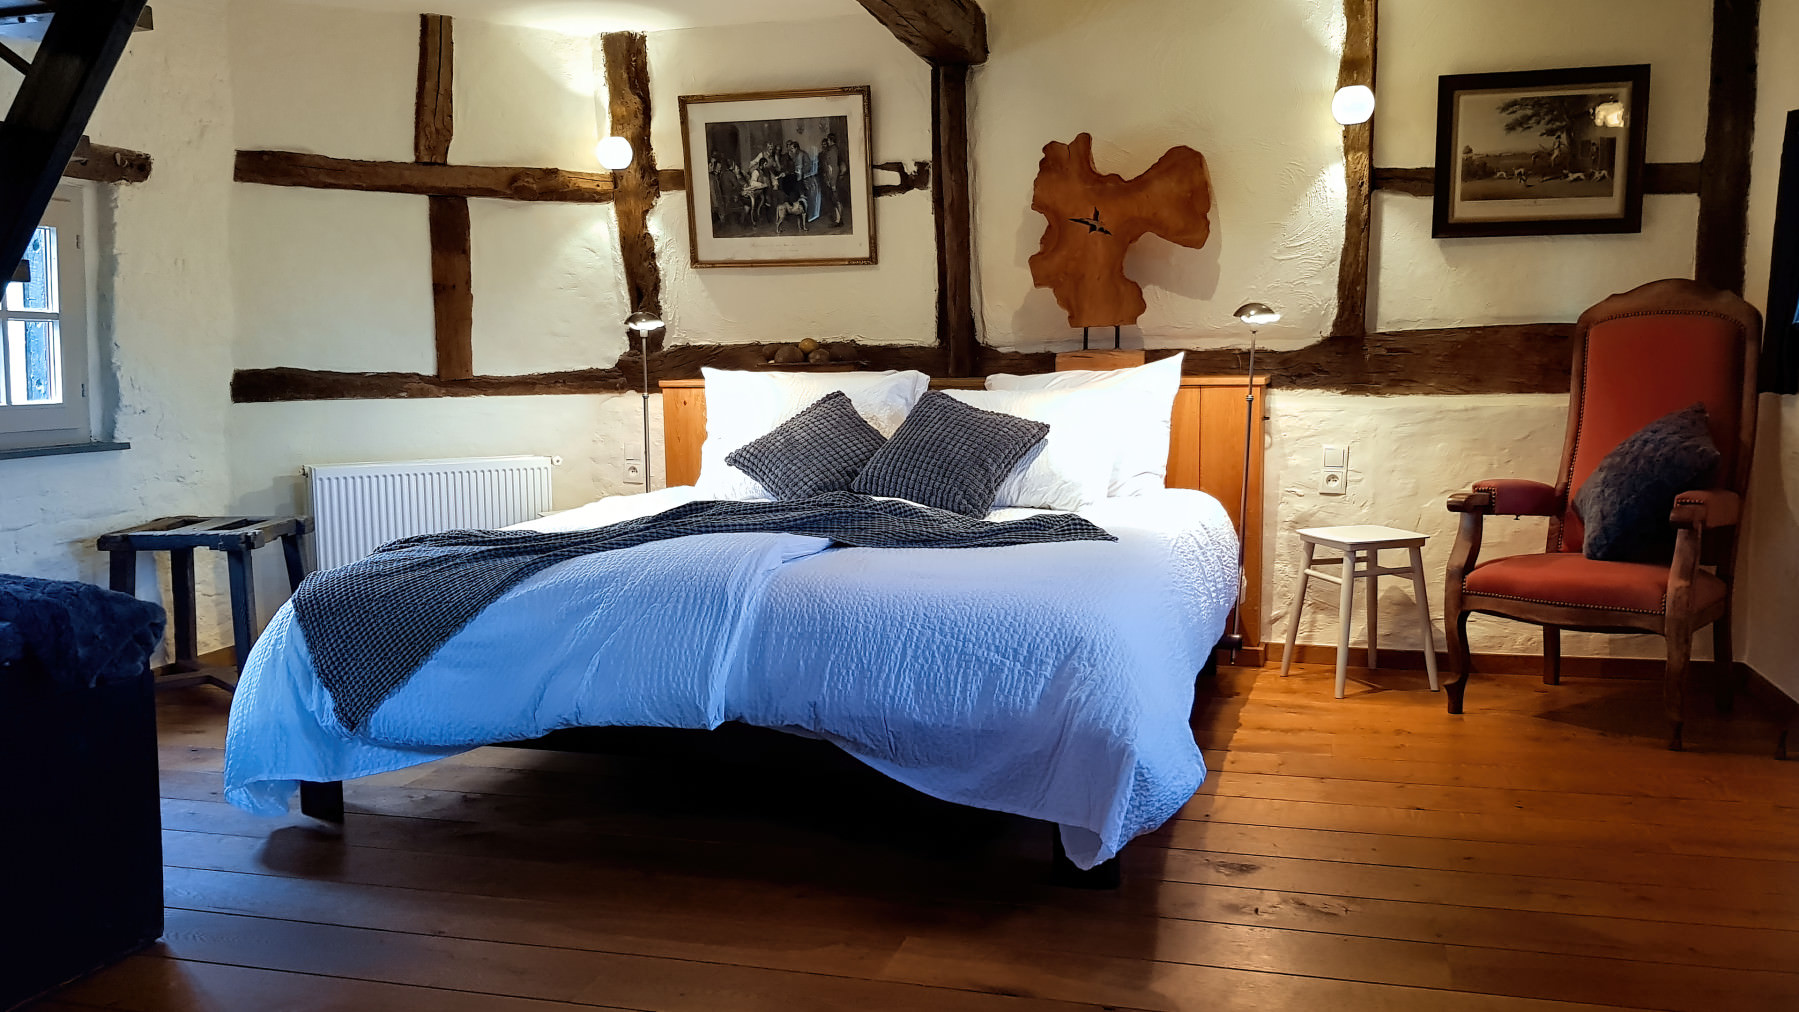 Background image of the bedroom with an Auping bed in it. It's the bedroom of the bed & breakfast of Onder de Poort in Moelingen Belgium